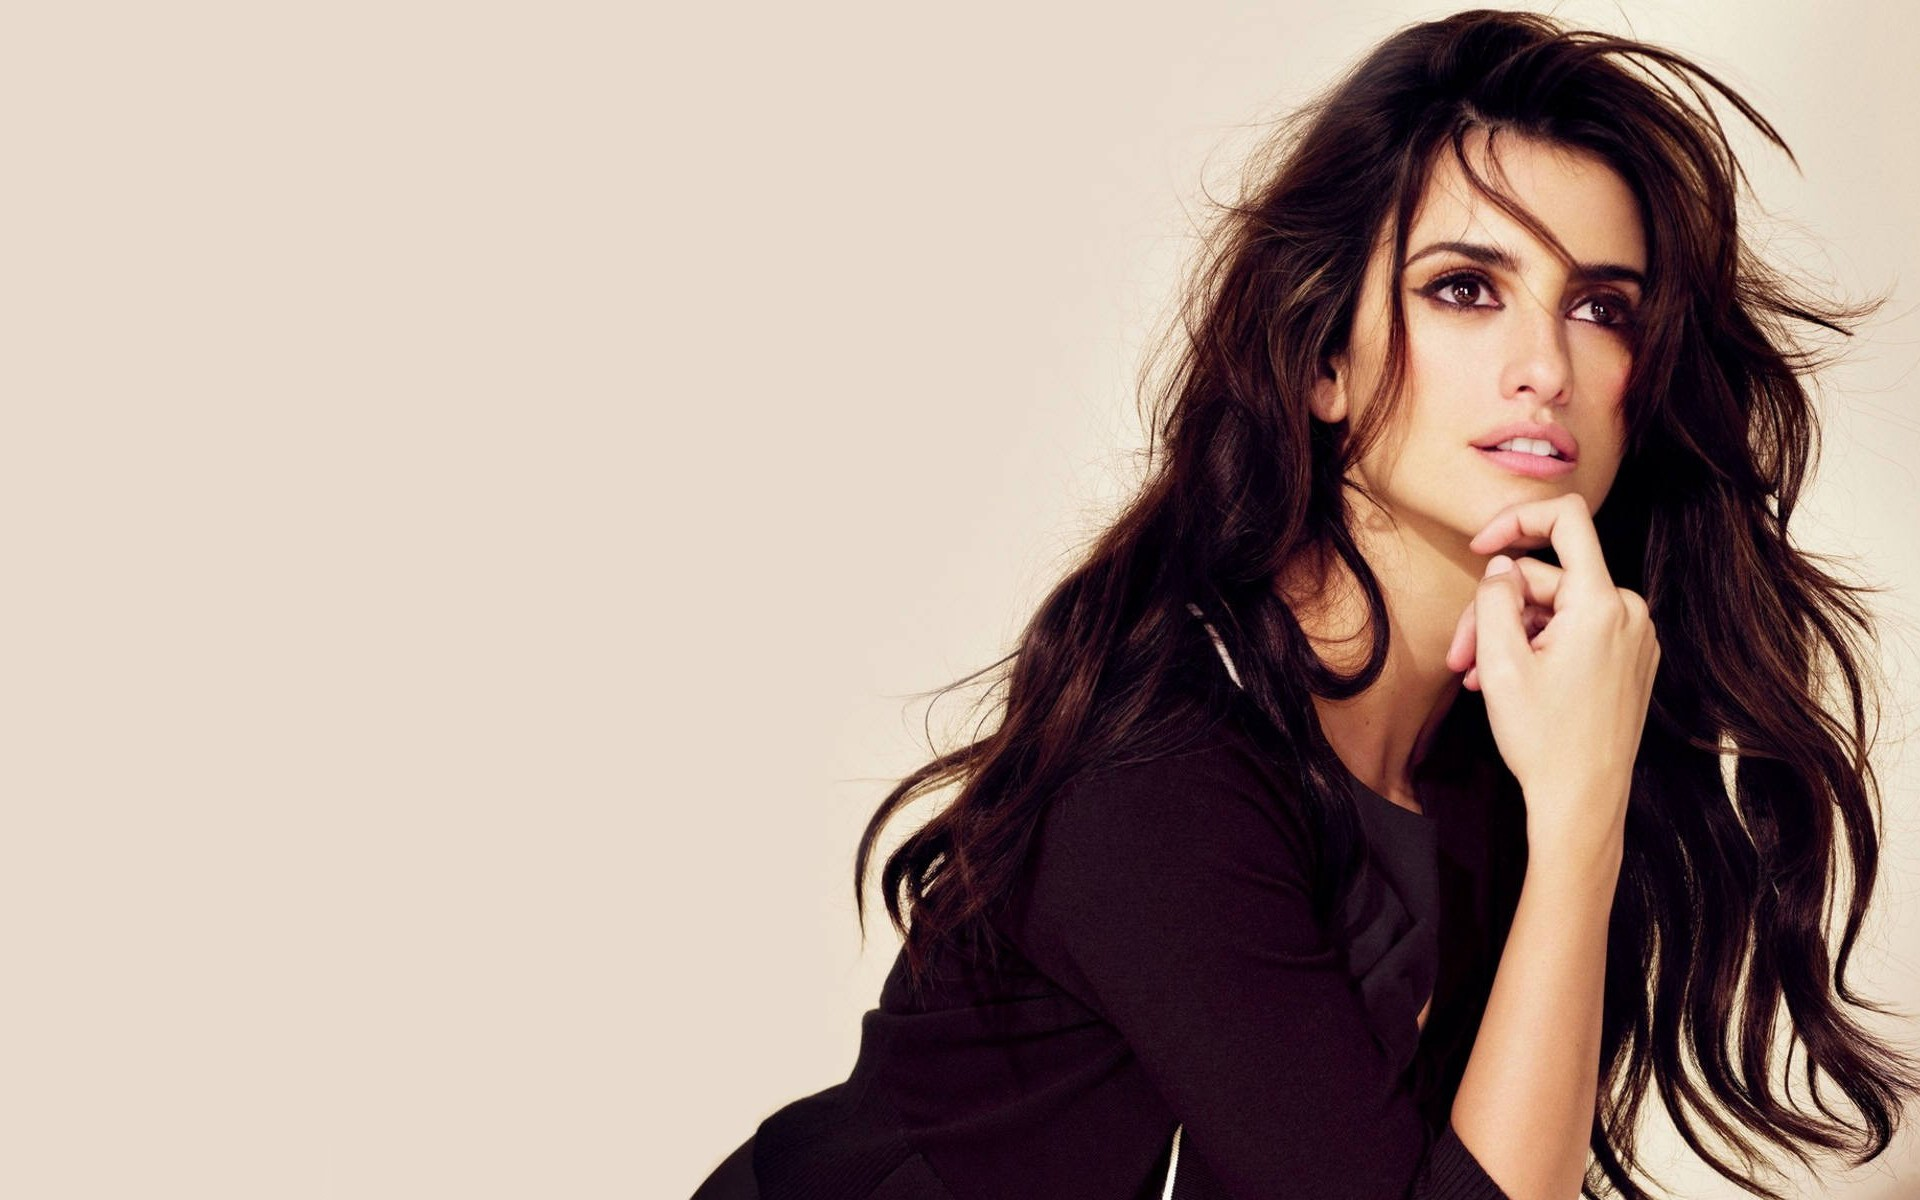 Penelope Cruz Wallpape... Penelope Cruz